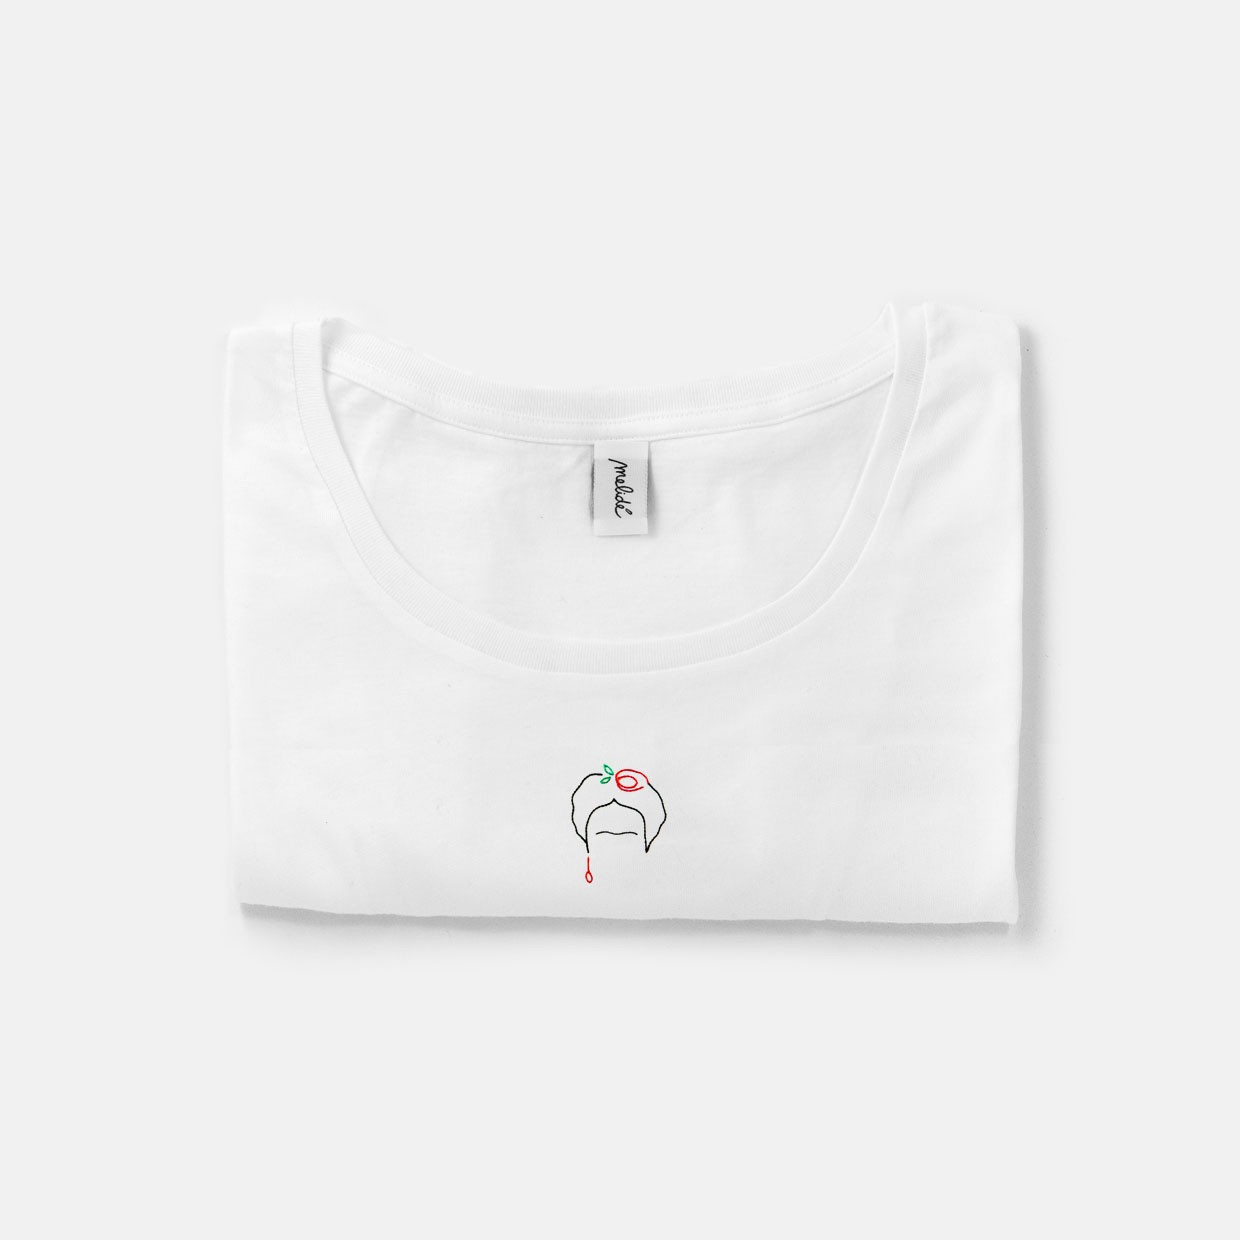 The FRIDA wide neck tee